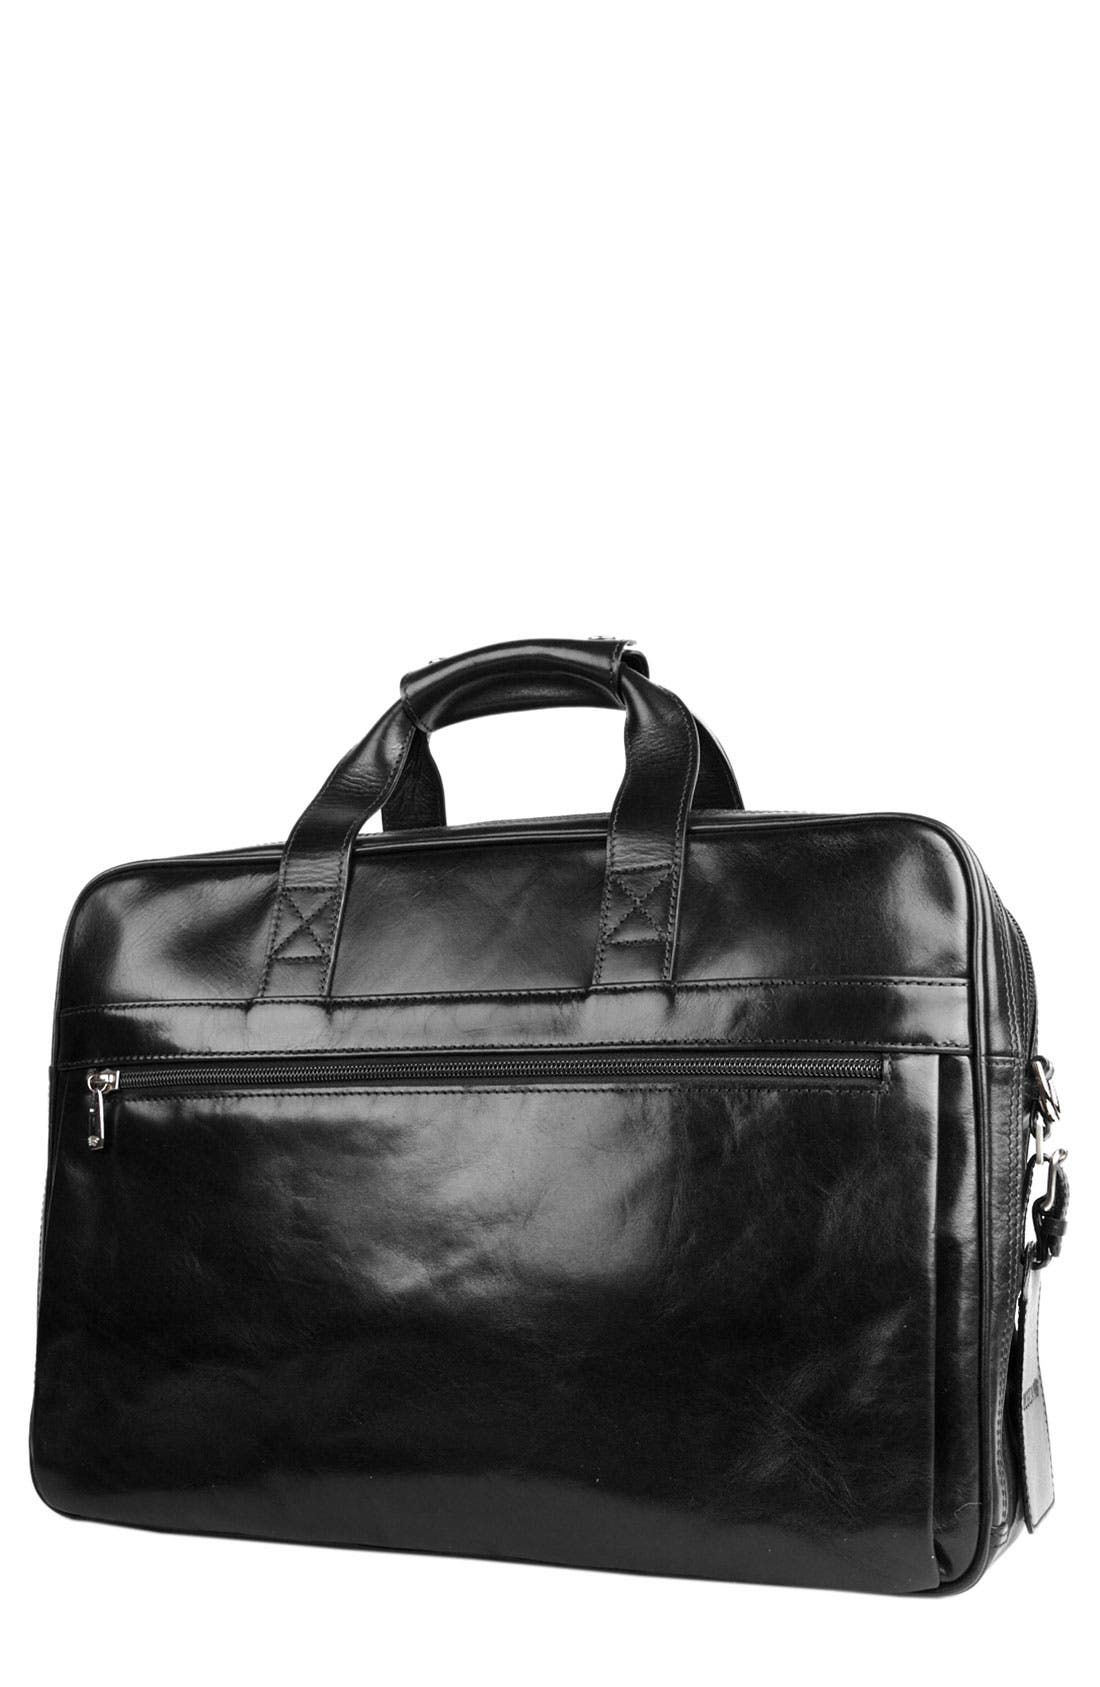 Double Compartment Leather Briefcase,                             Main thumbnail 1, color,                             BLACK